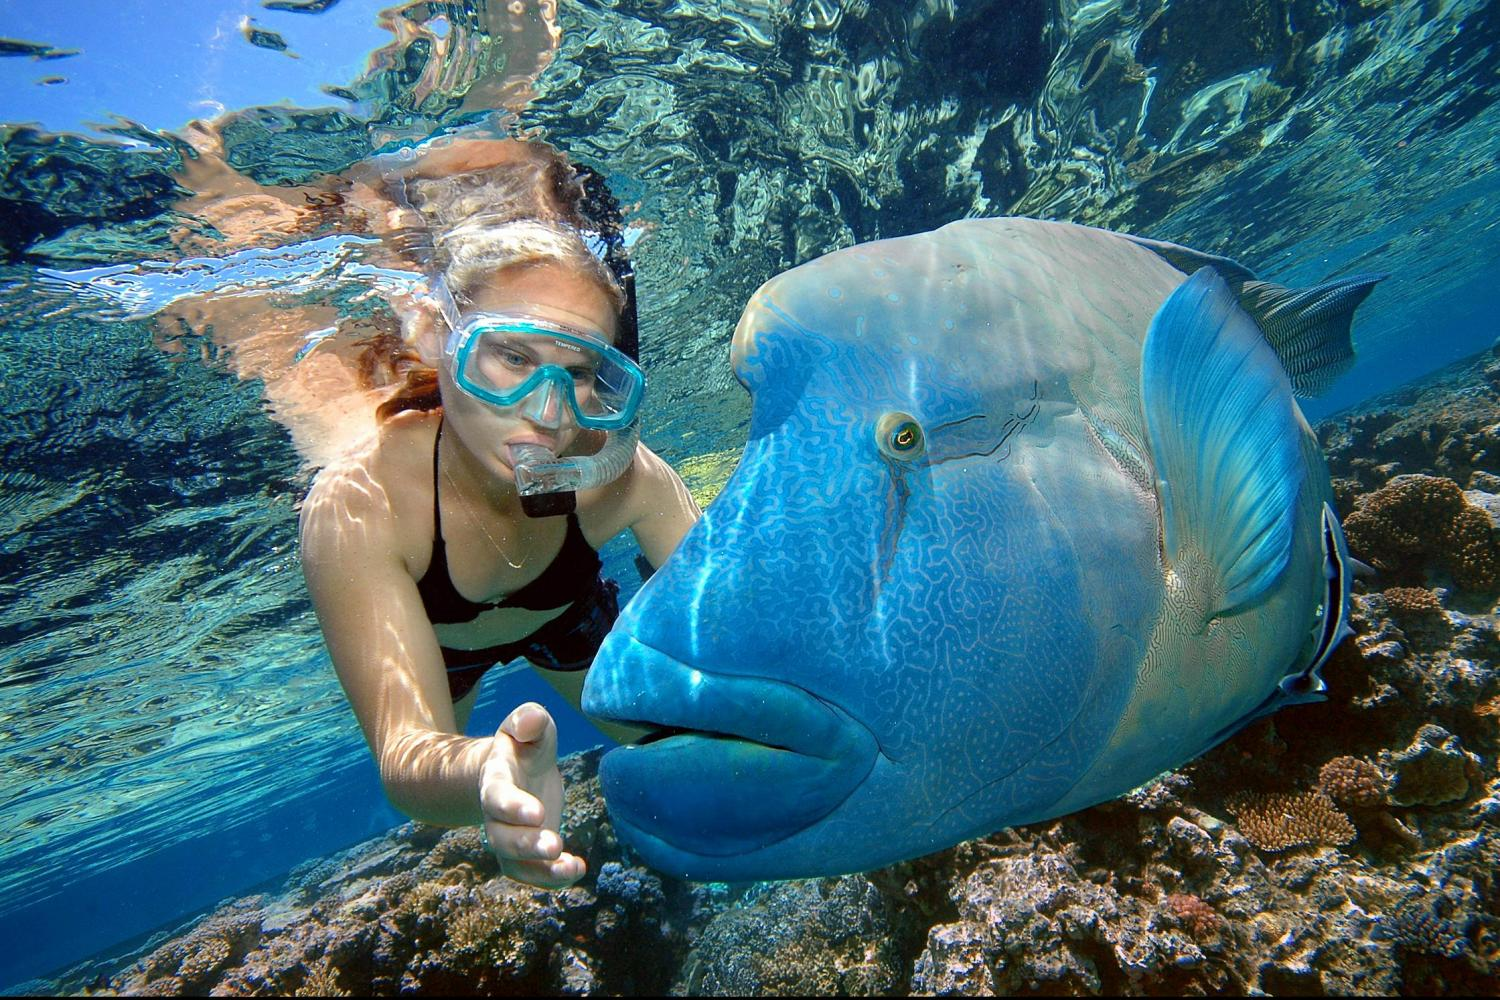 Best Underwater Experiences in the World